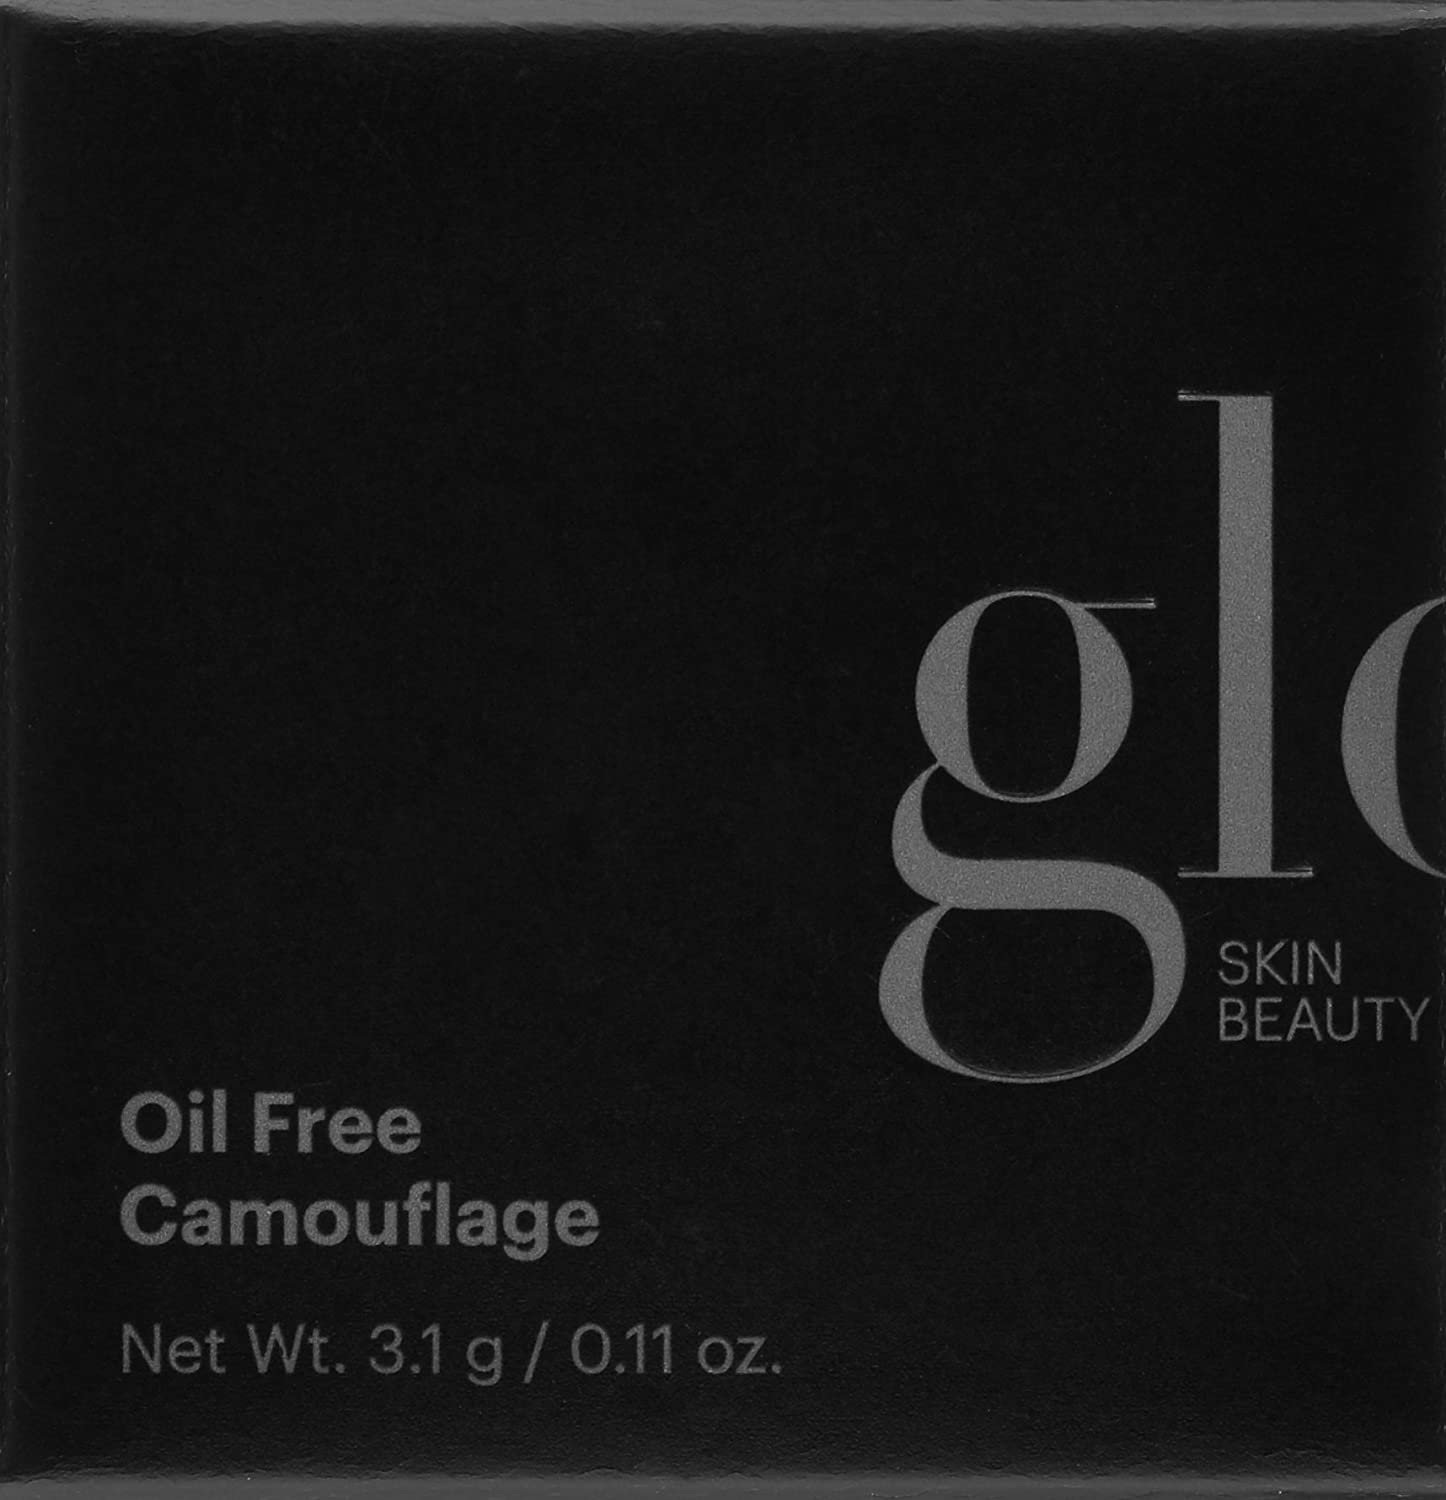 Glo Skin Beauty Oil Free Camouflage Concealer in Golden Correct and Conceal Pimples, Scars, and Dark Spots 4 Shades